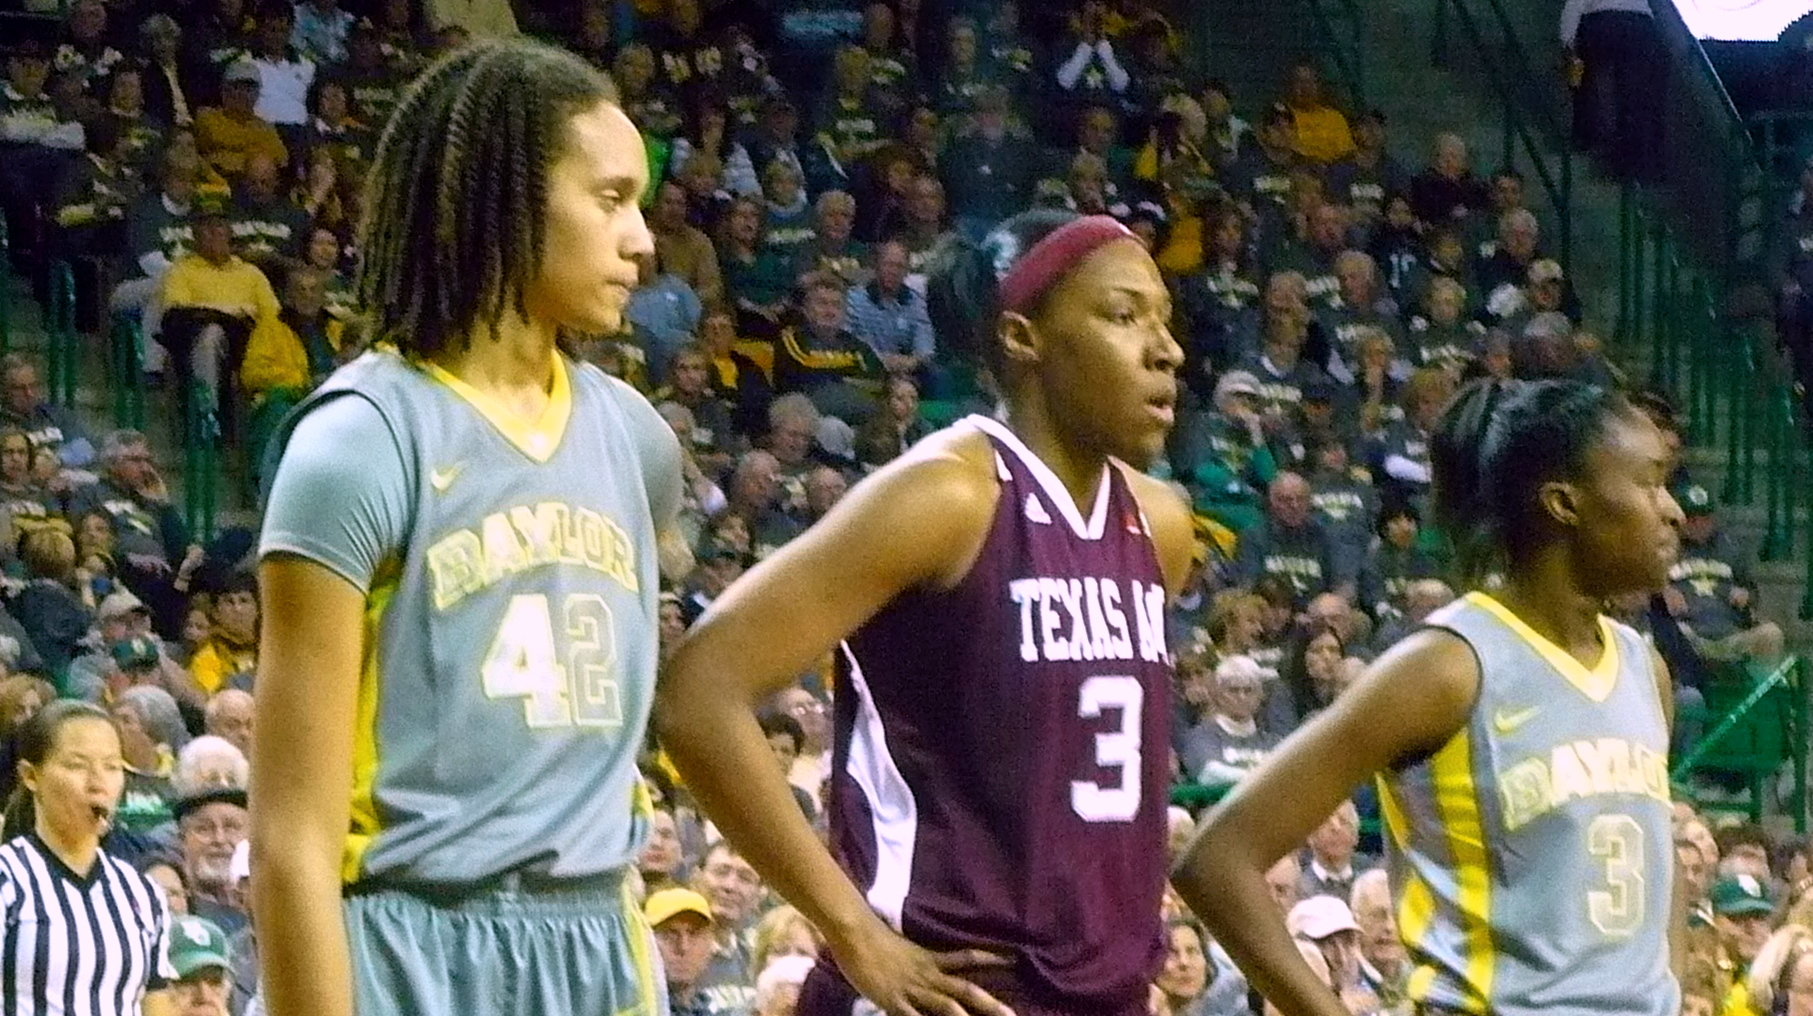 Baylor routs Texas A&M in Waco in front of a sellout crowd